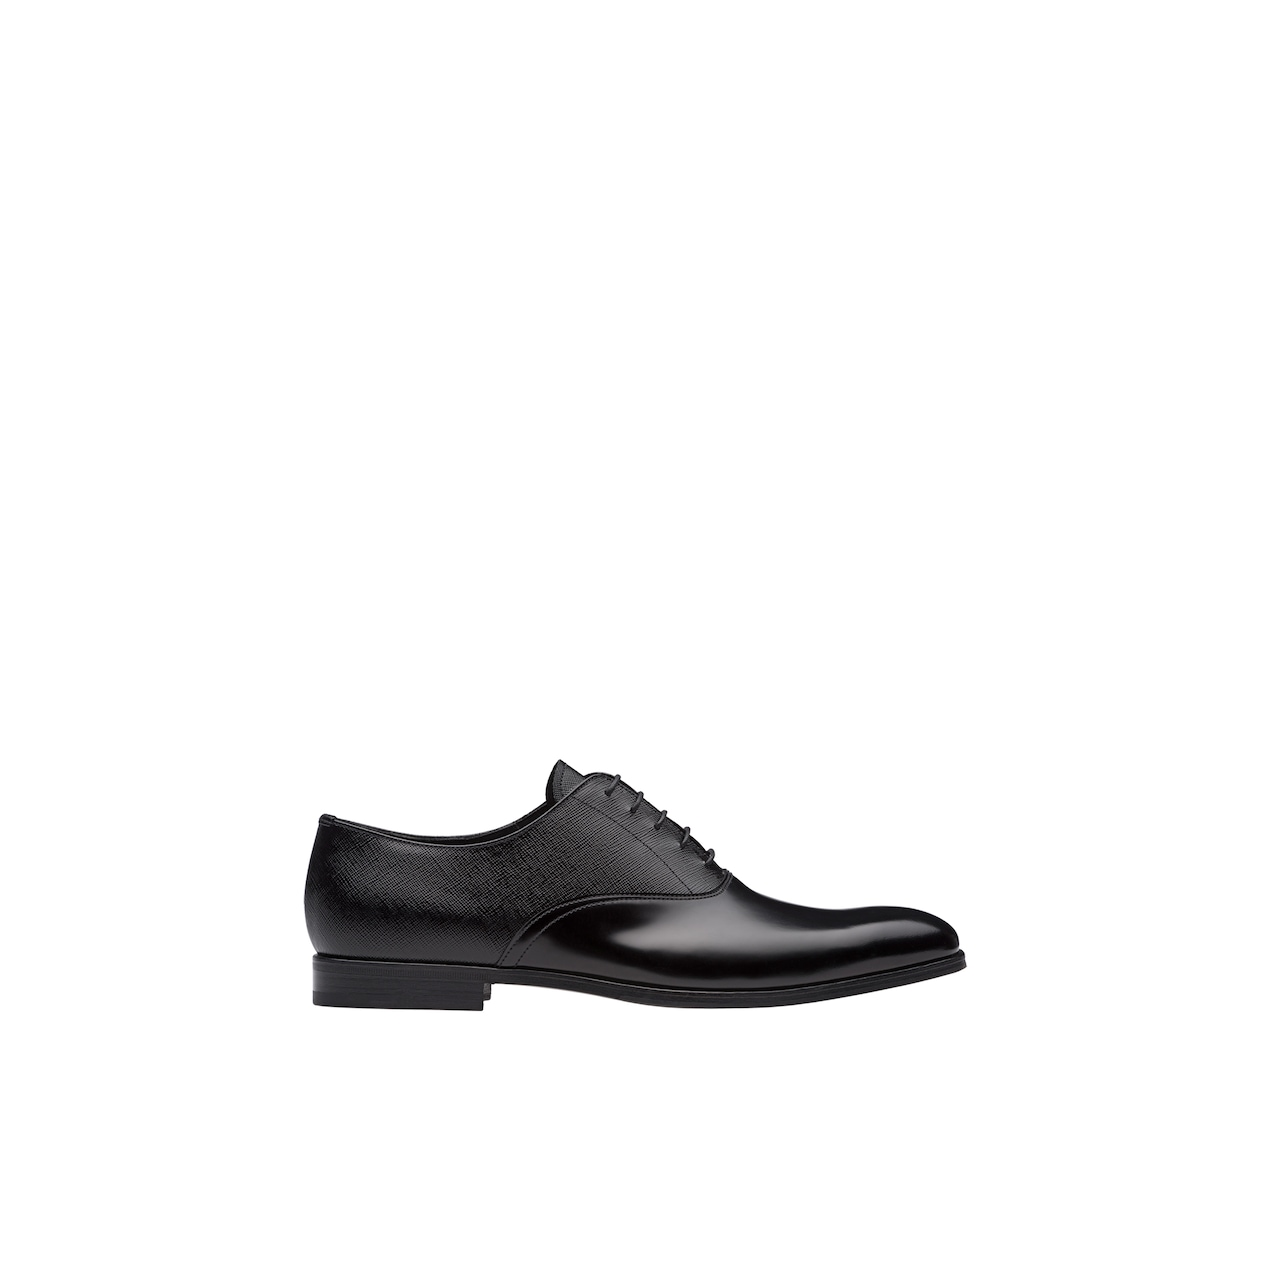 Saffiano and brushed leather Oxford shoes